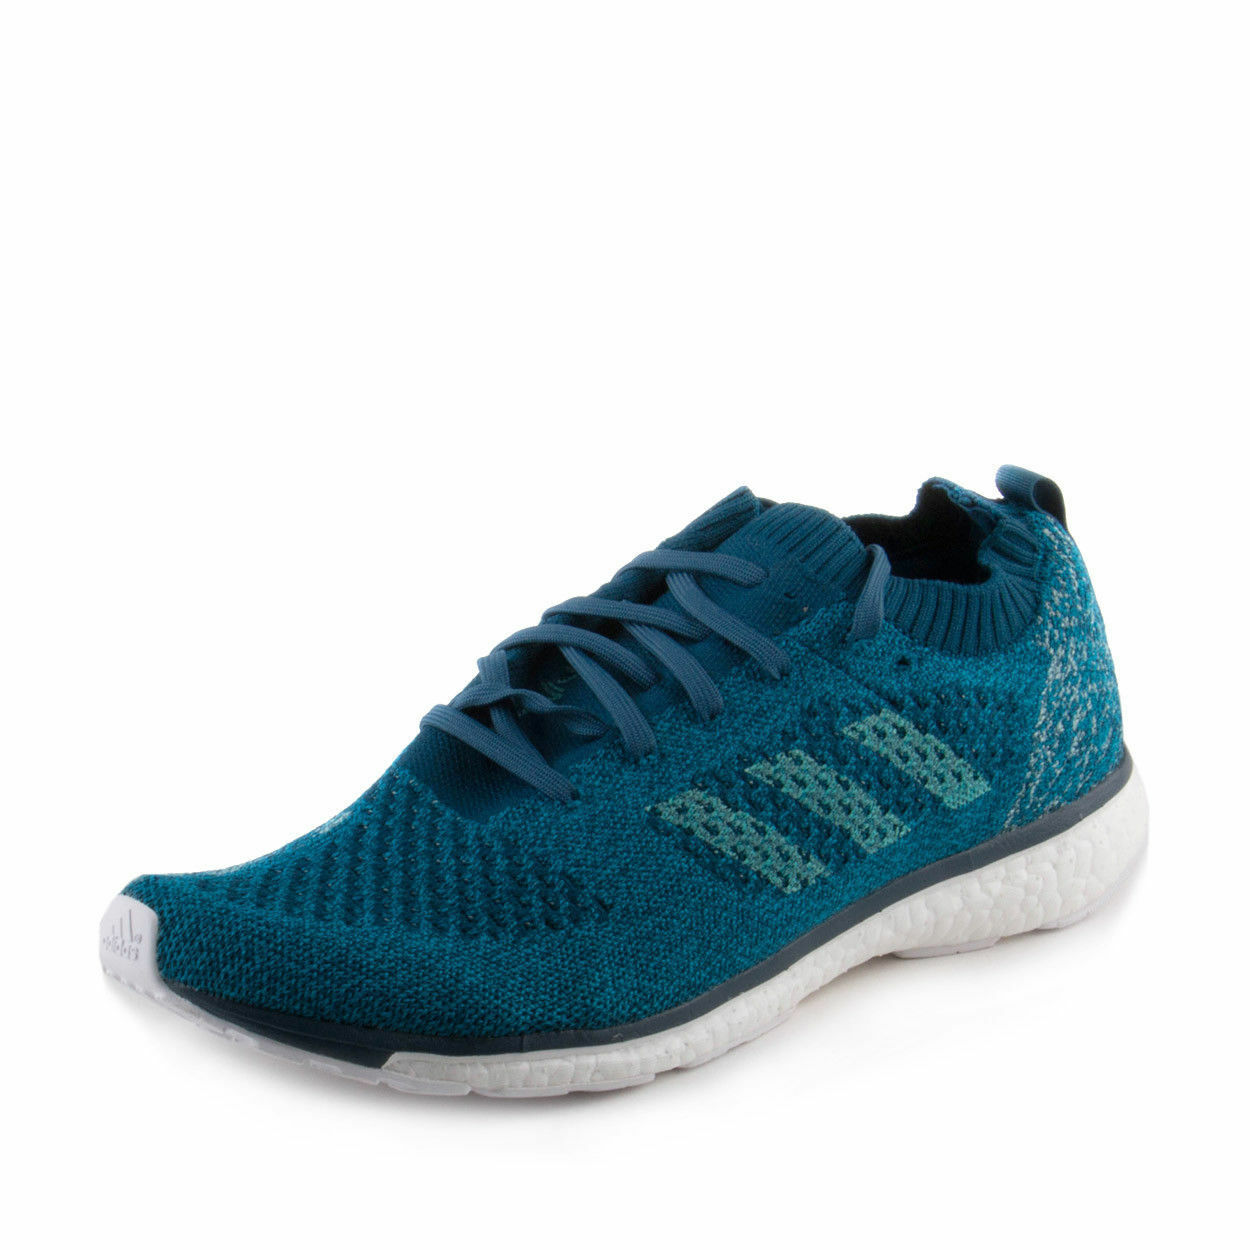 ADIDAS ADIDAS ADIDAS Adizero Prime LTD Parley Boost Sneakers Running shoes bluee CQ1858 SZ 12 d5d079